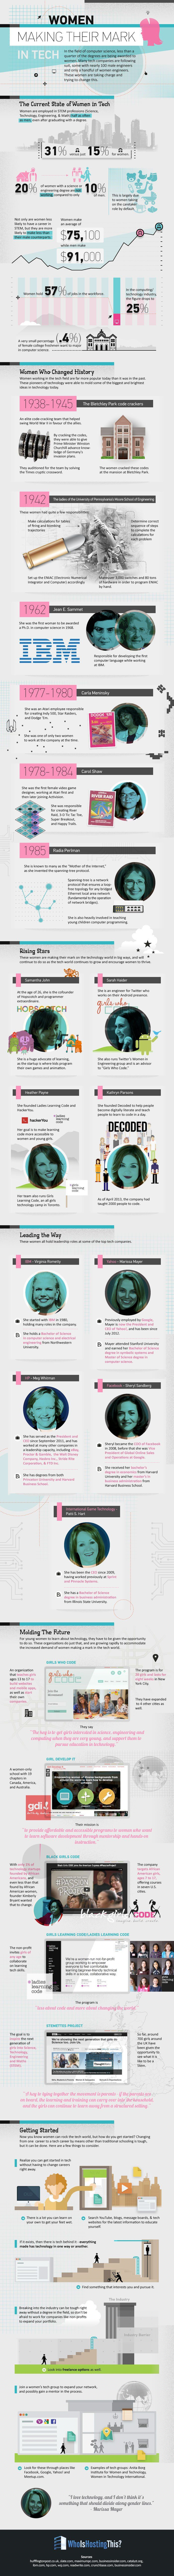 Women Making Their Mark in Tech - Despite making up only of the tech field,  these women have made an impact in inventing technology & leading top tech  ...